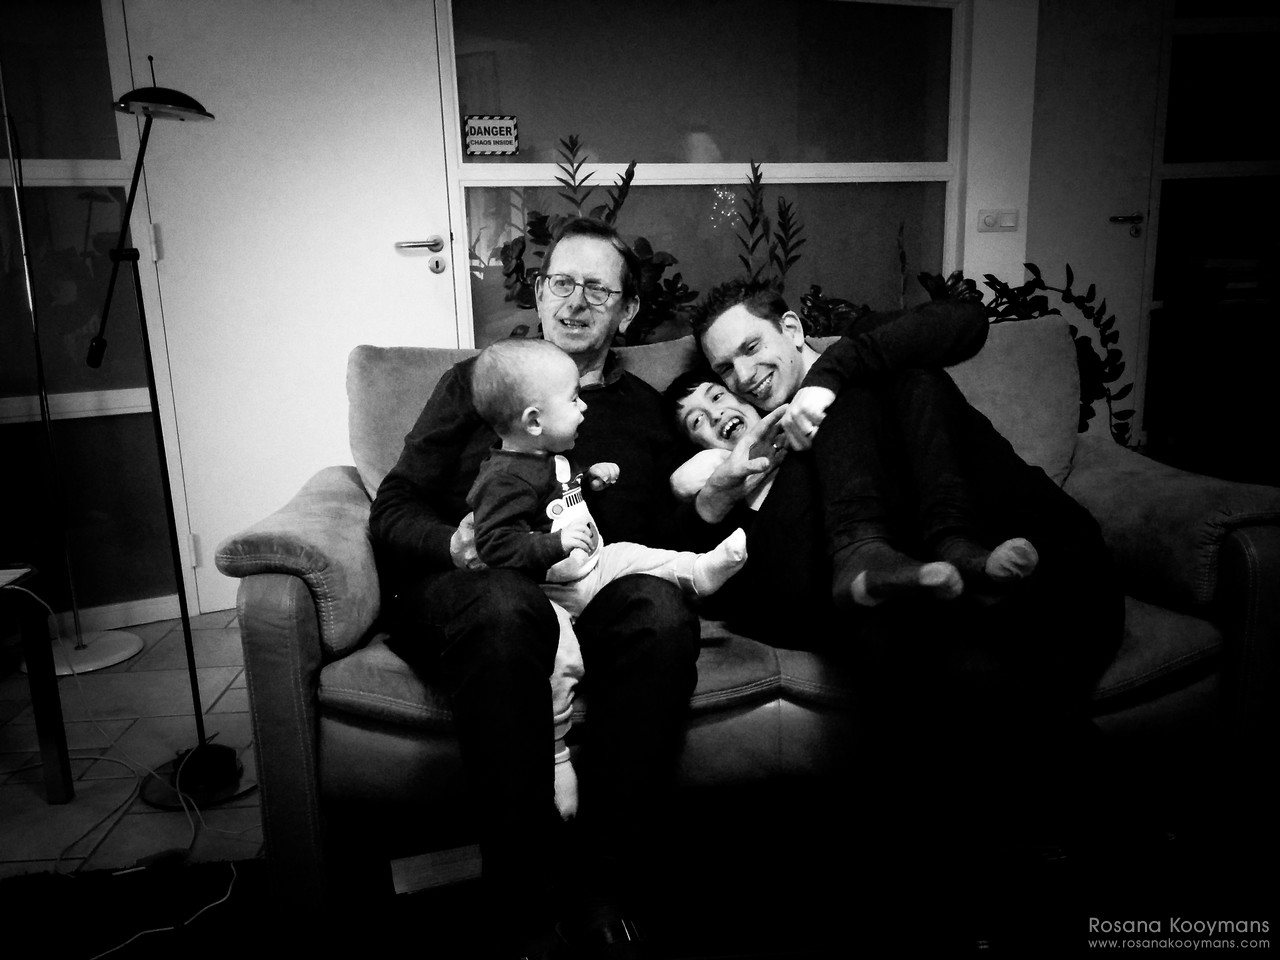 365 - February 3, 2017: The Male Couch Seth Quinn Wouter Leo